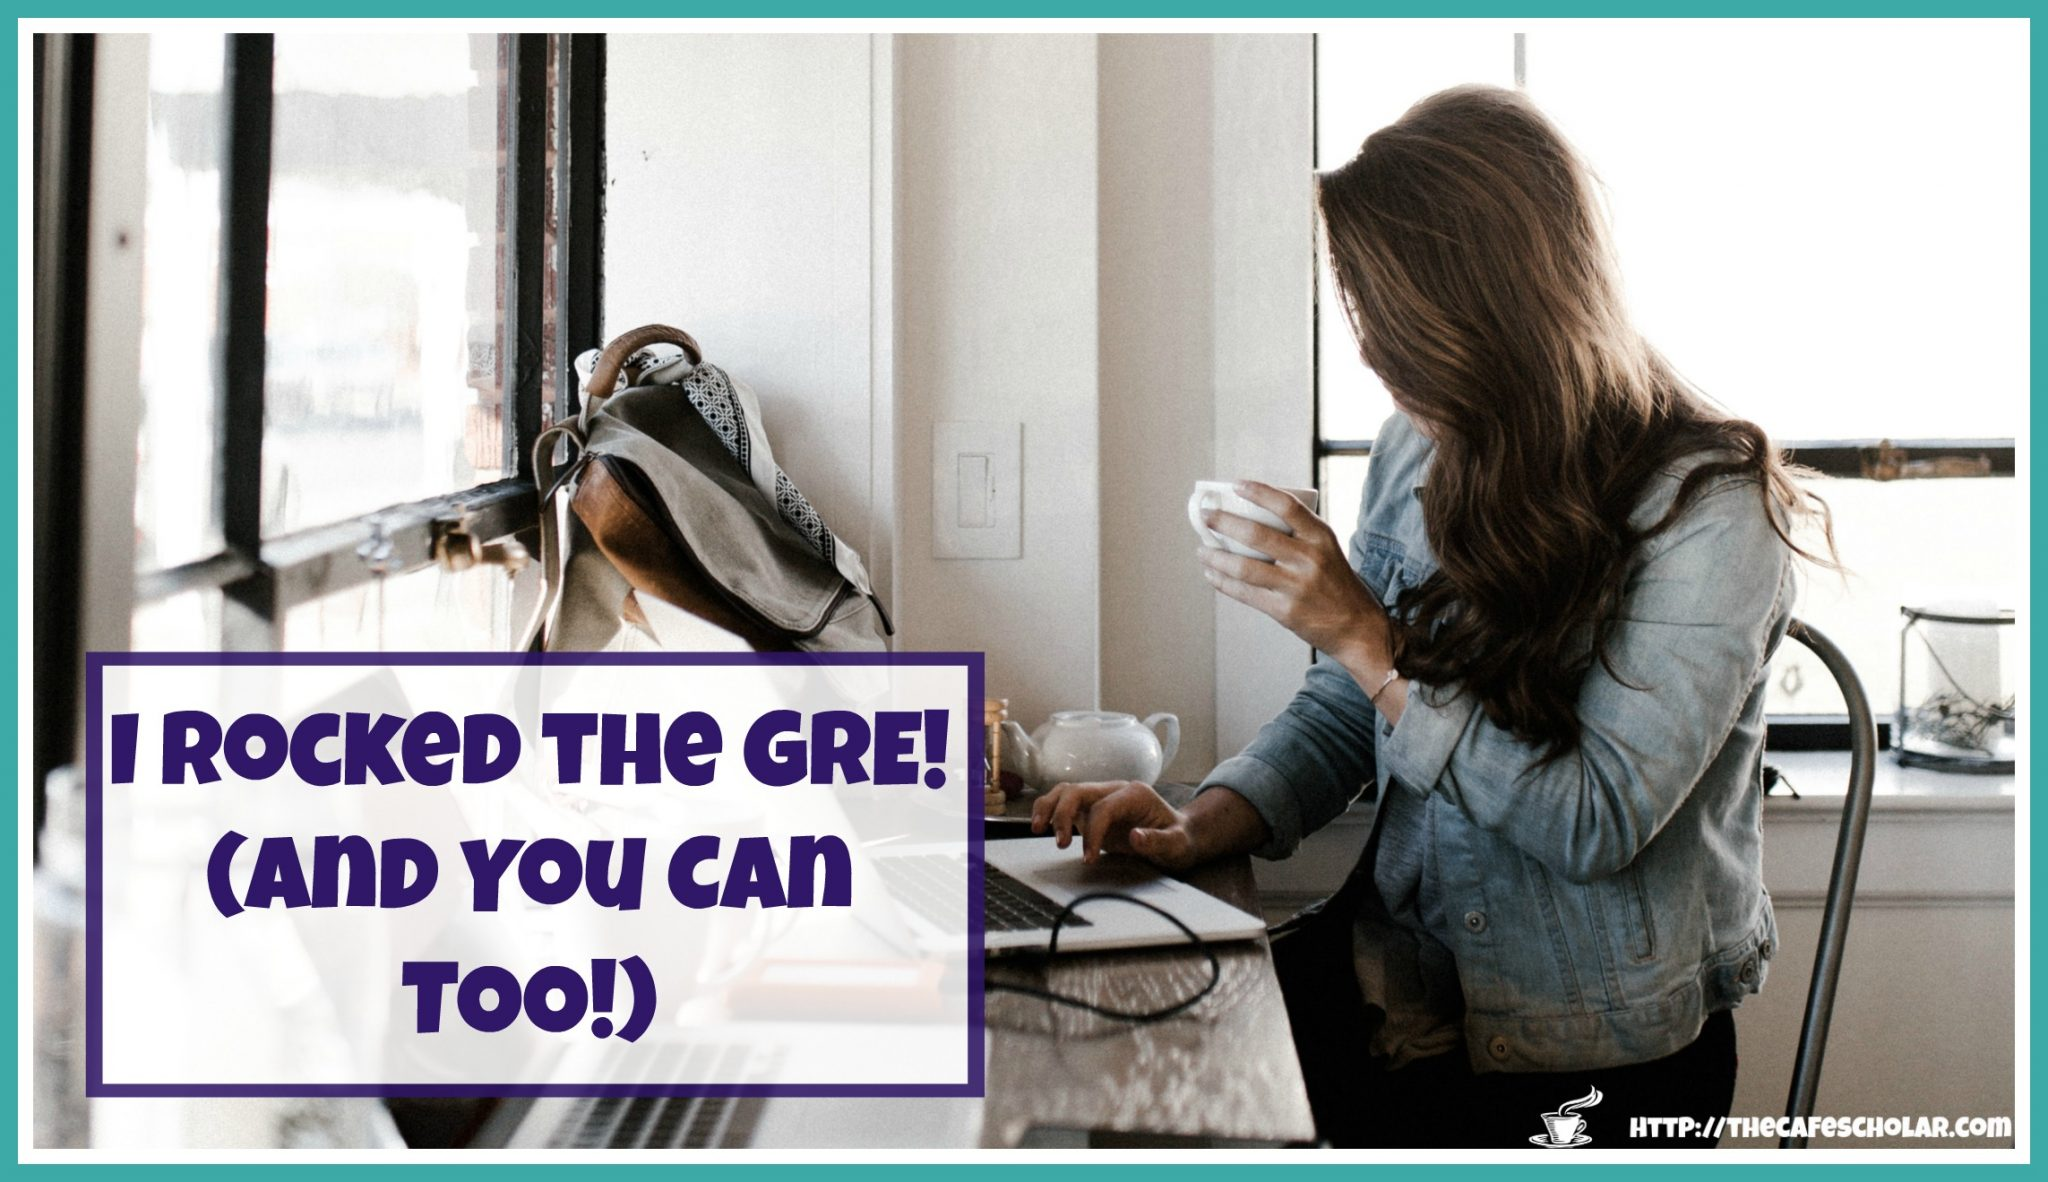 I rocked the GRE (and so can you!)